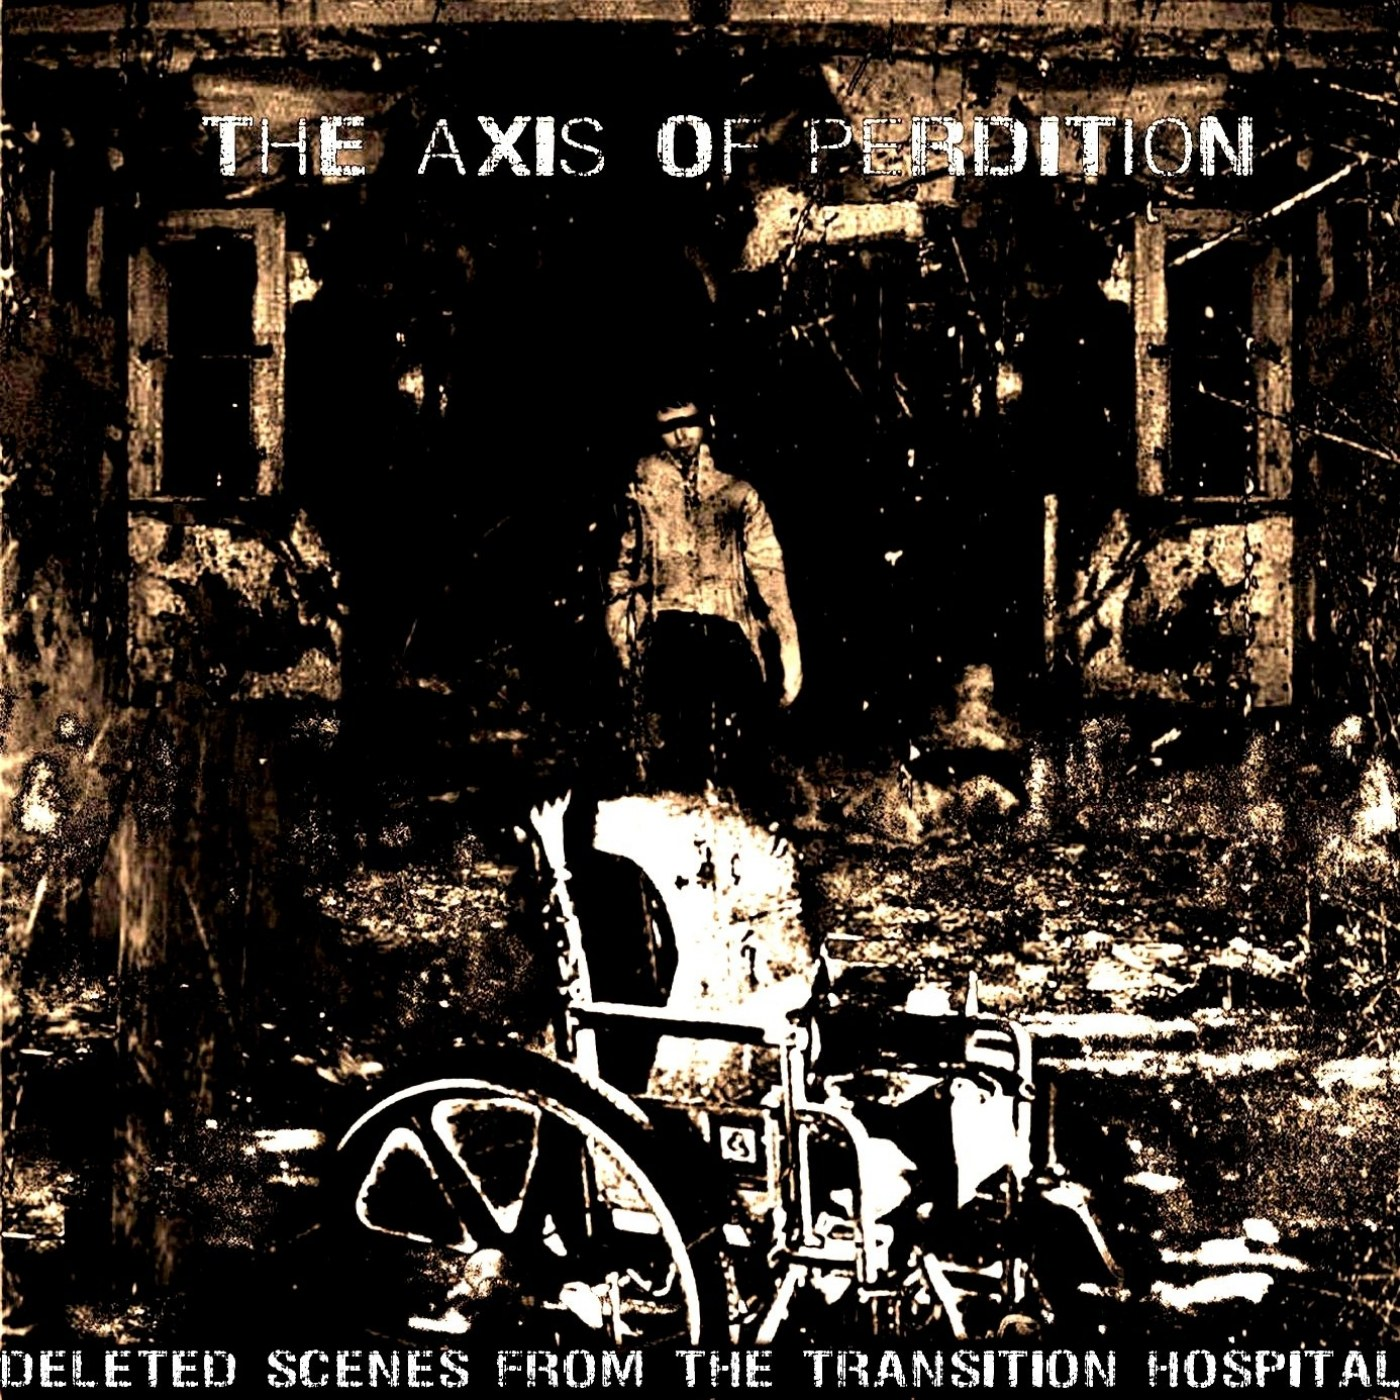 Review for The Axis of Perdition - Deleted Scenes from the Transition Hospital